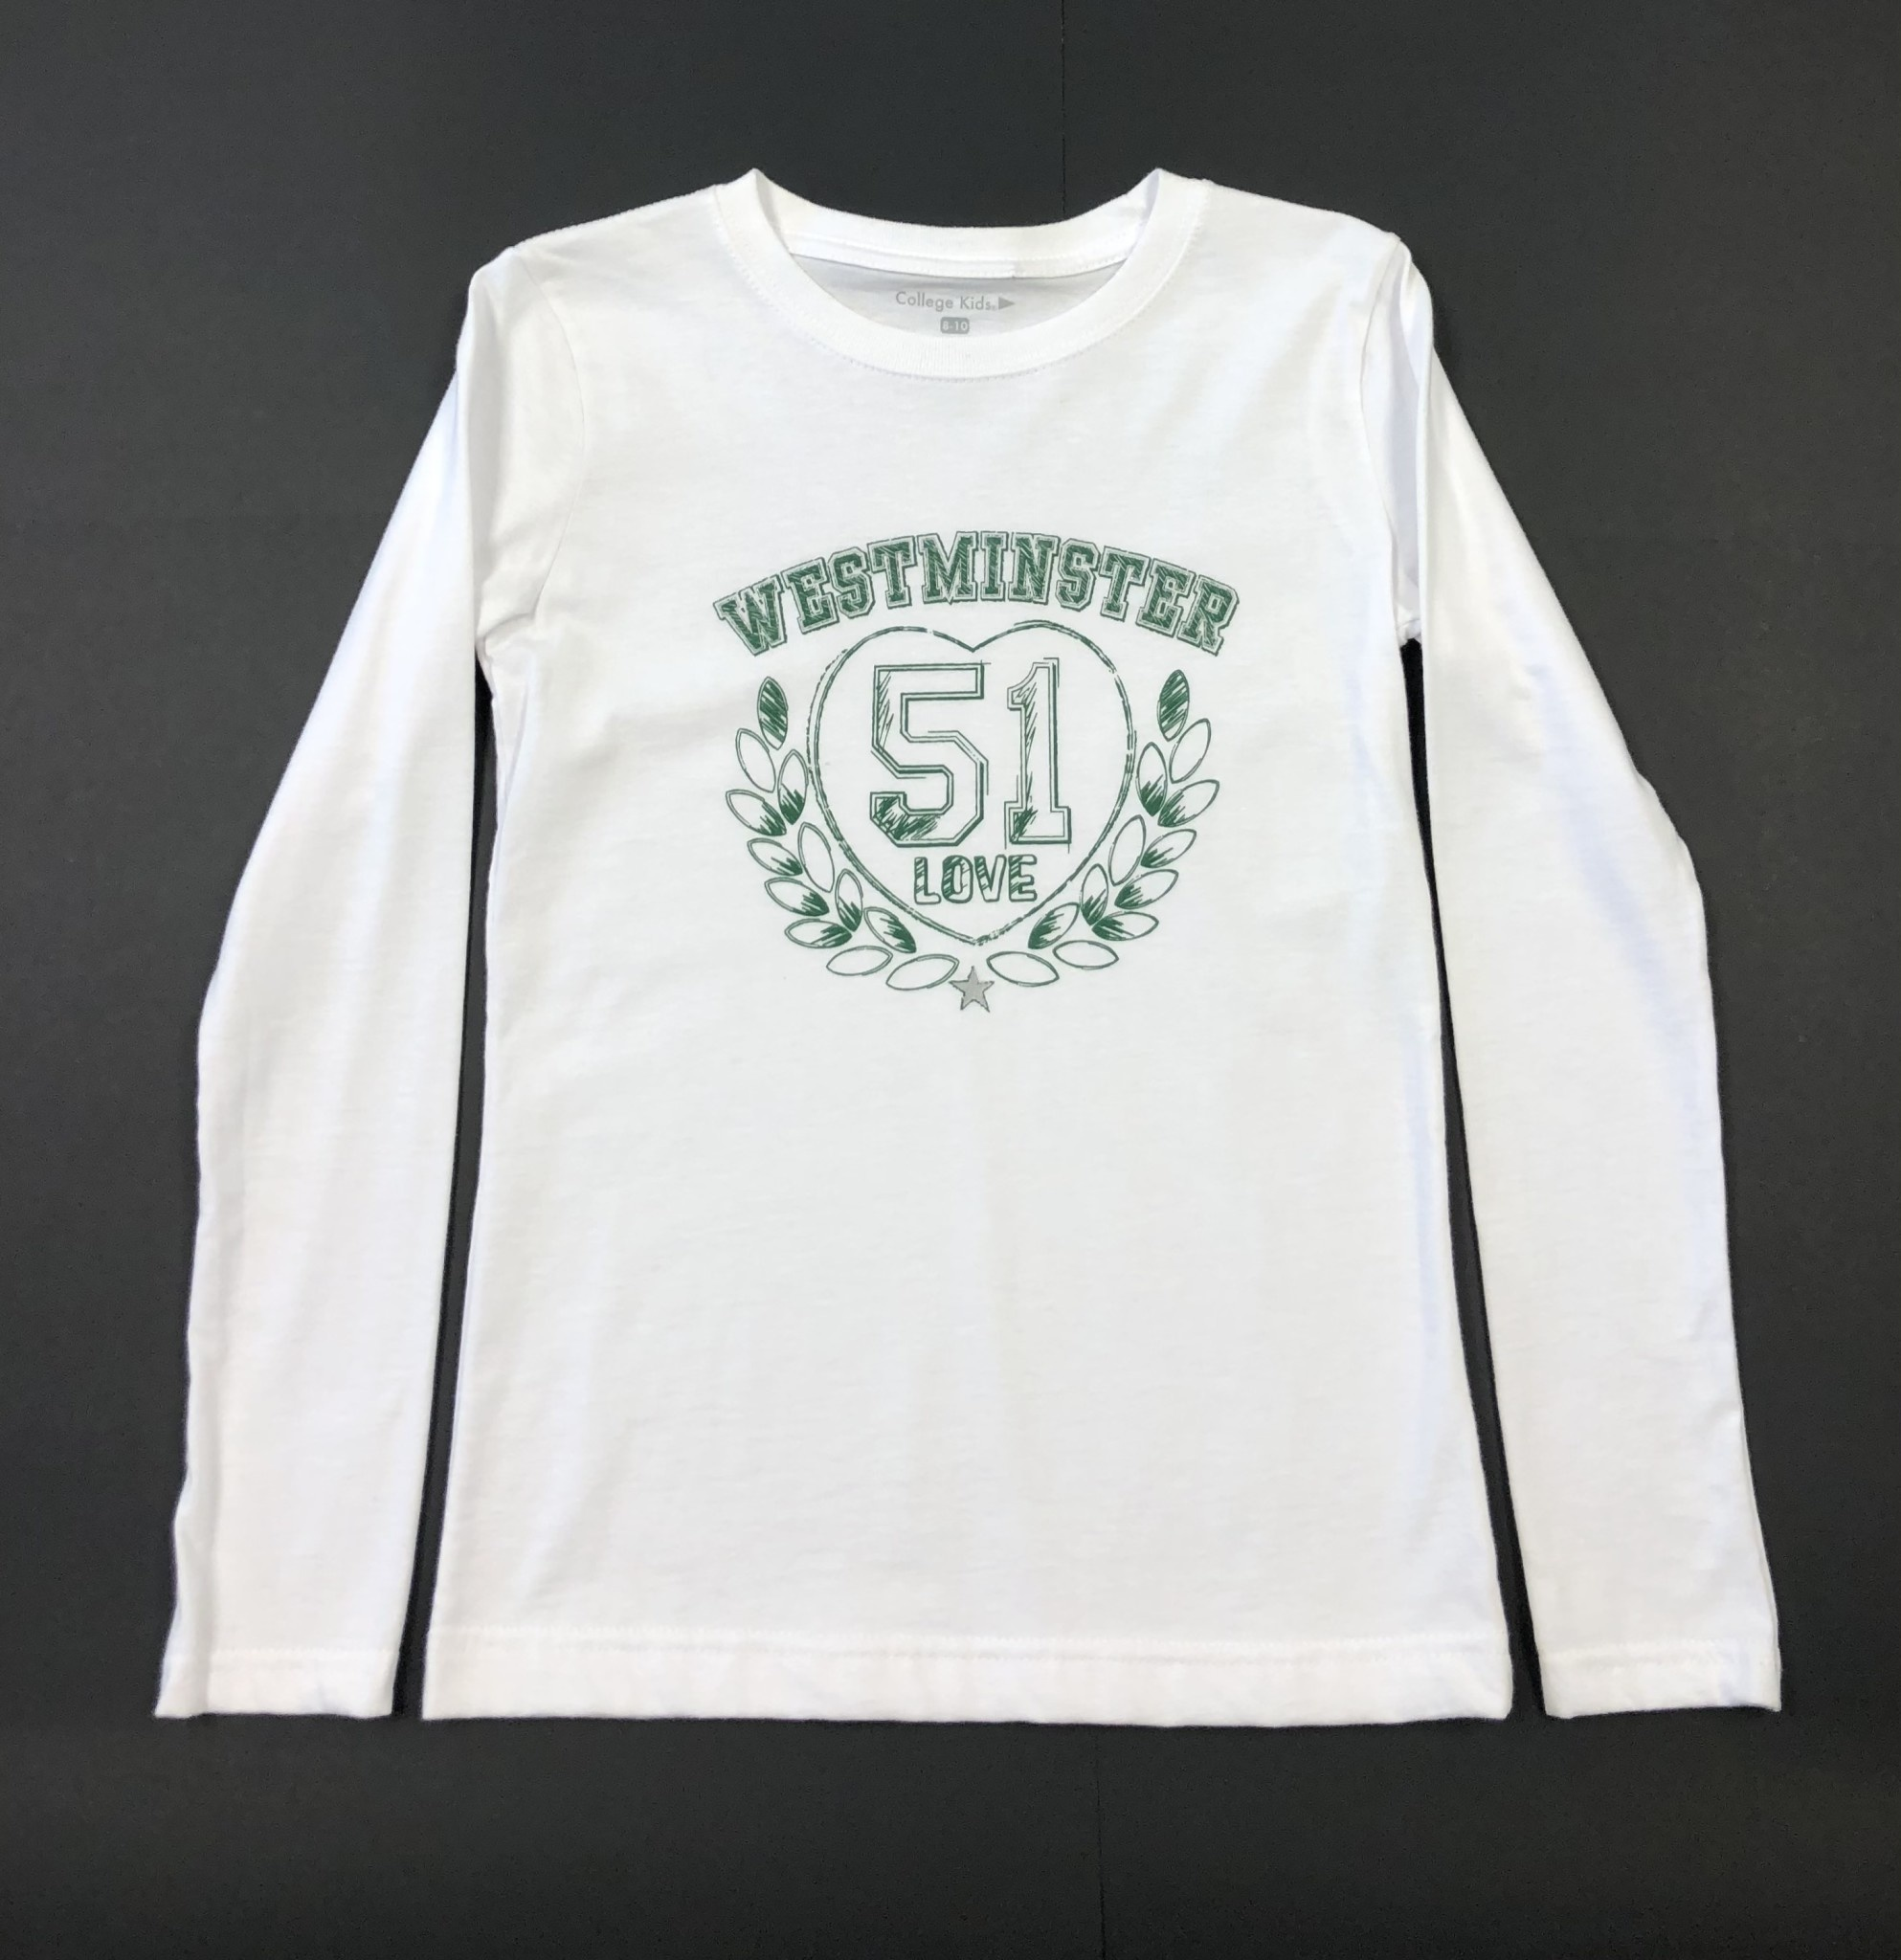 College Kids T: College Kids LS Girls' White Westminster 51 Love with Silver Star